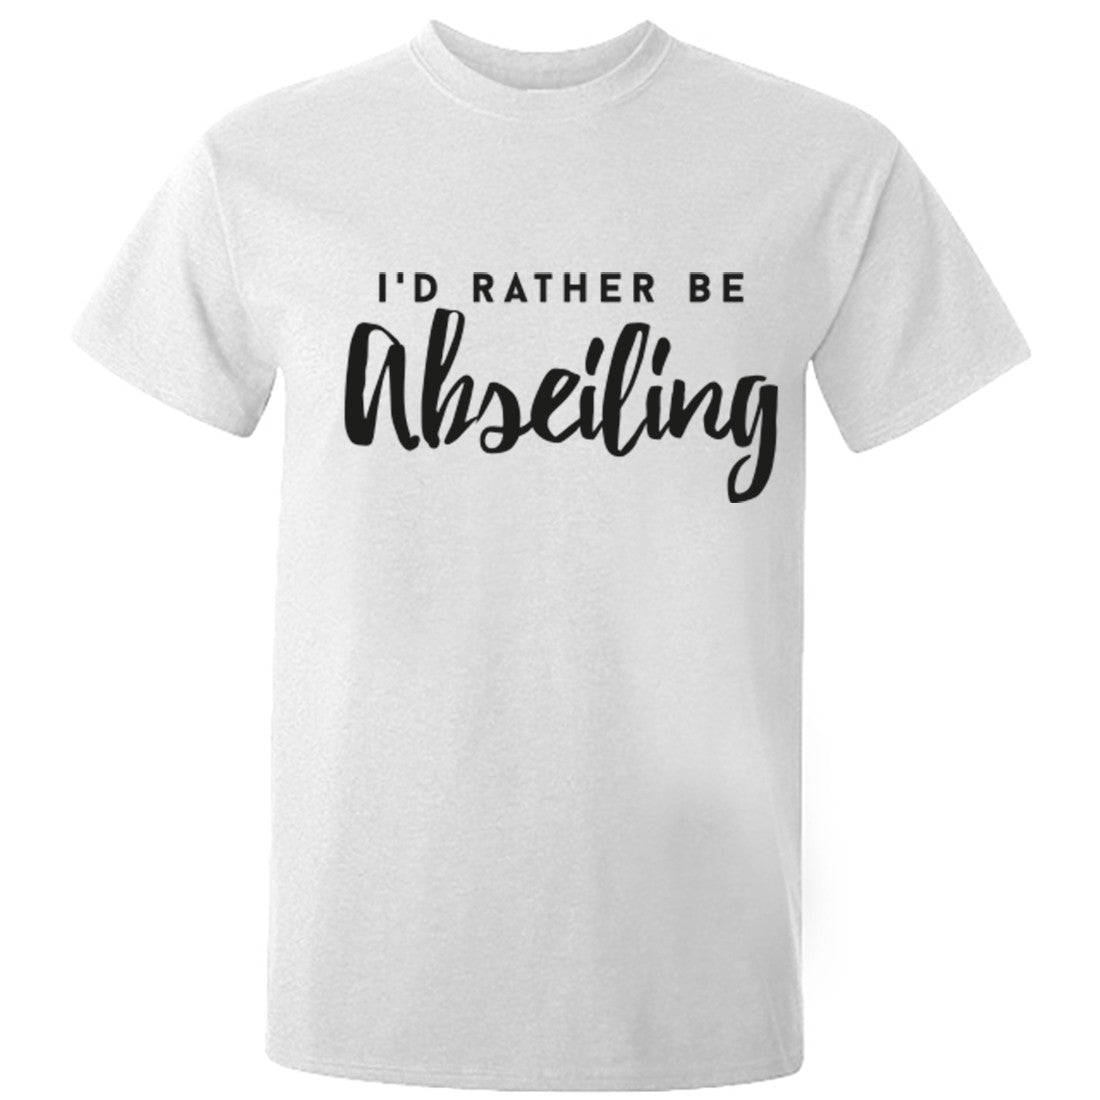 I'd Rather Be Abseiling unisex t-shirt K0213